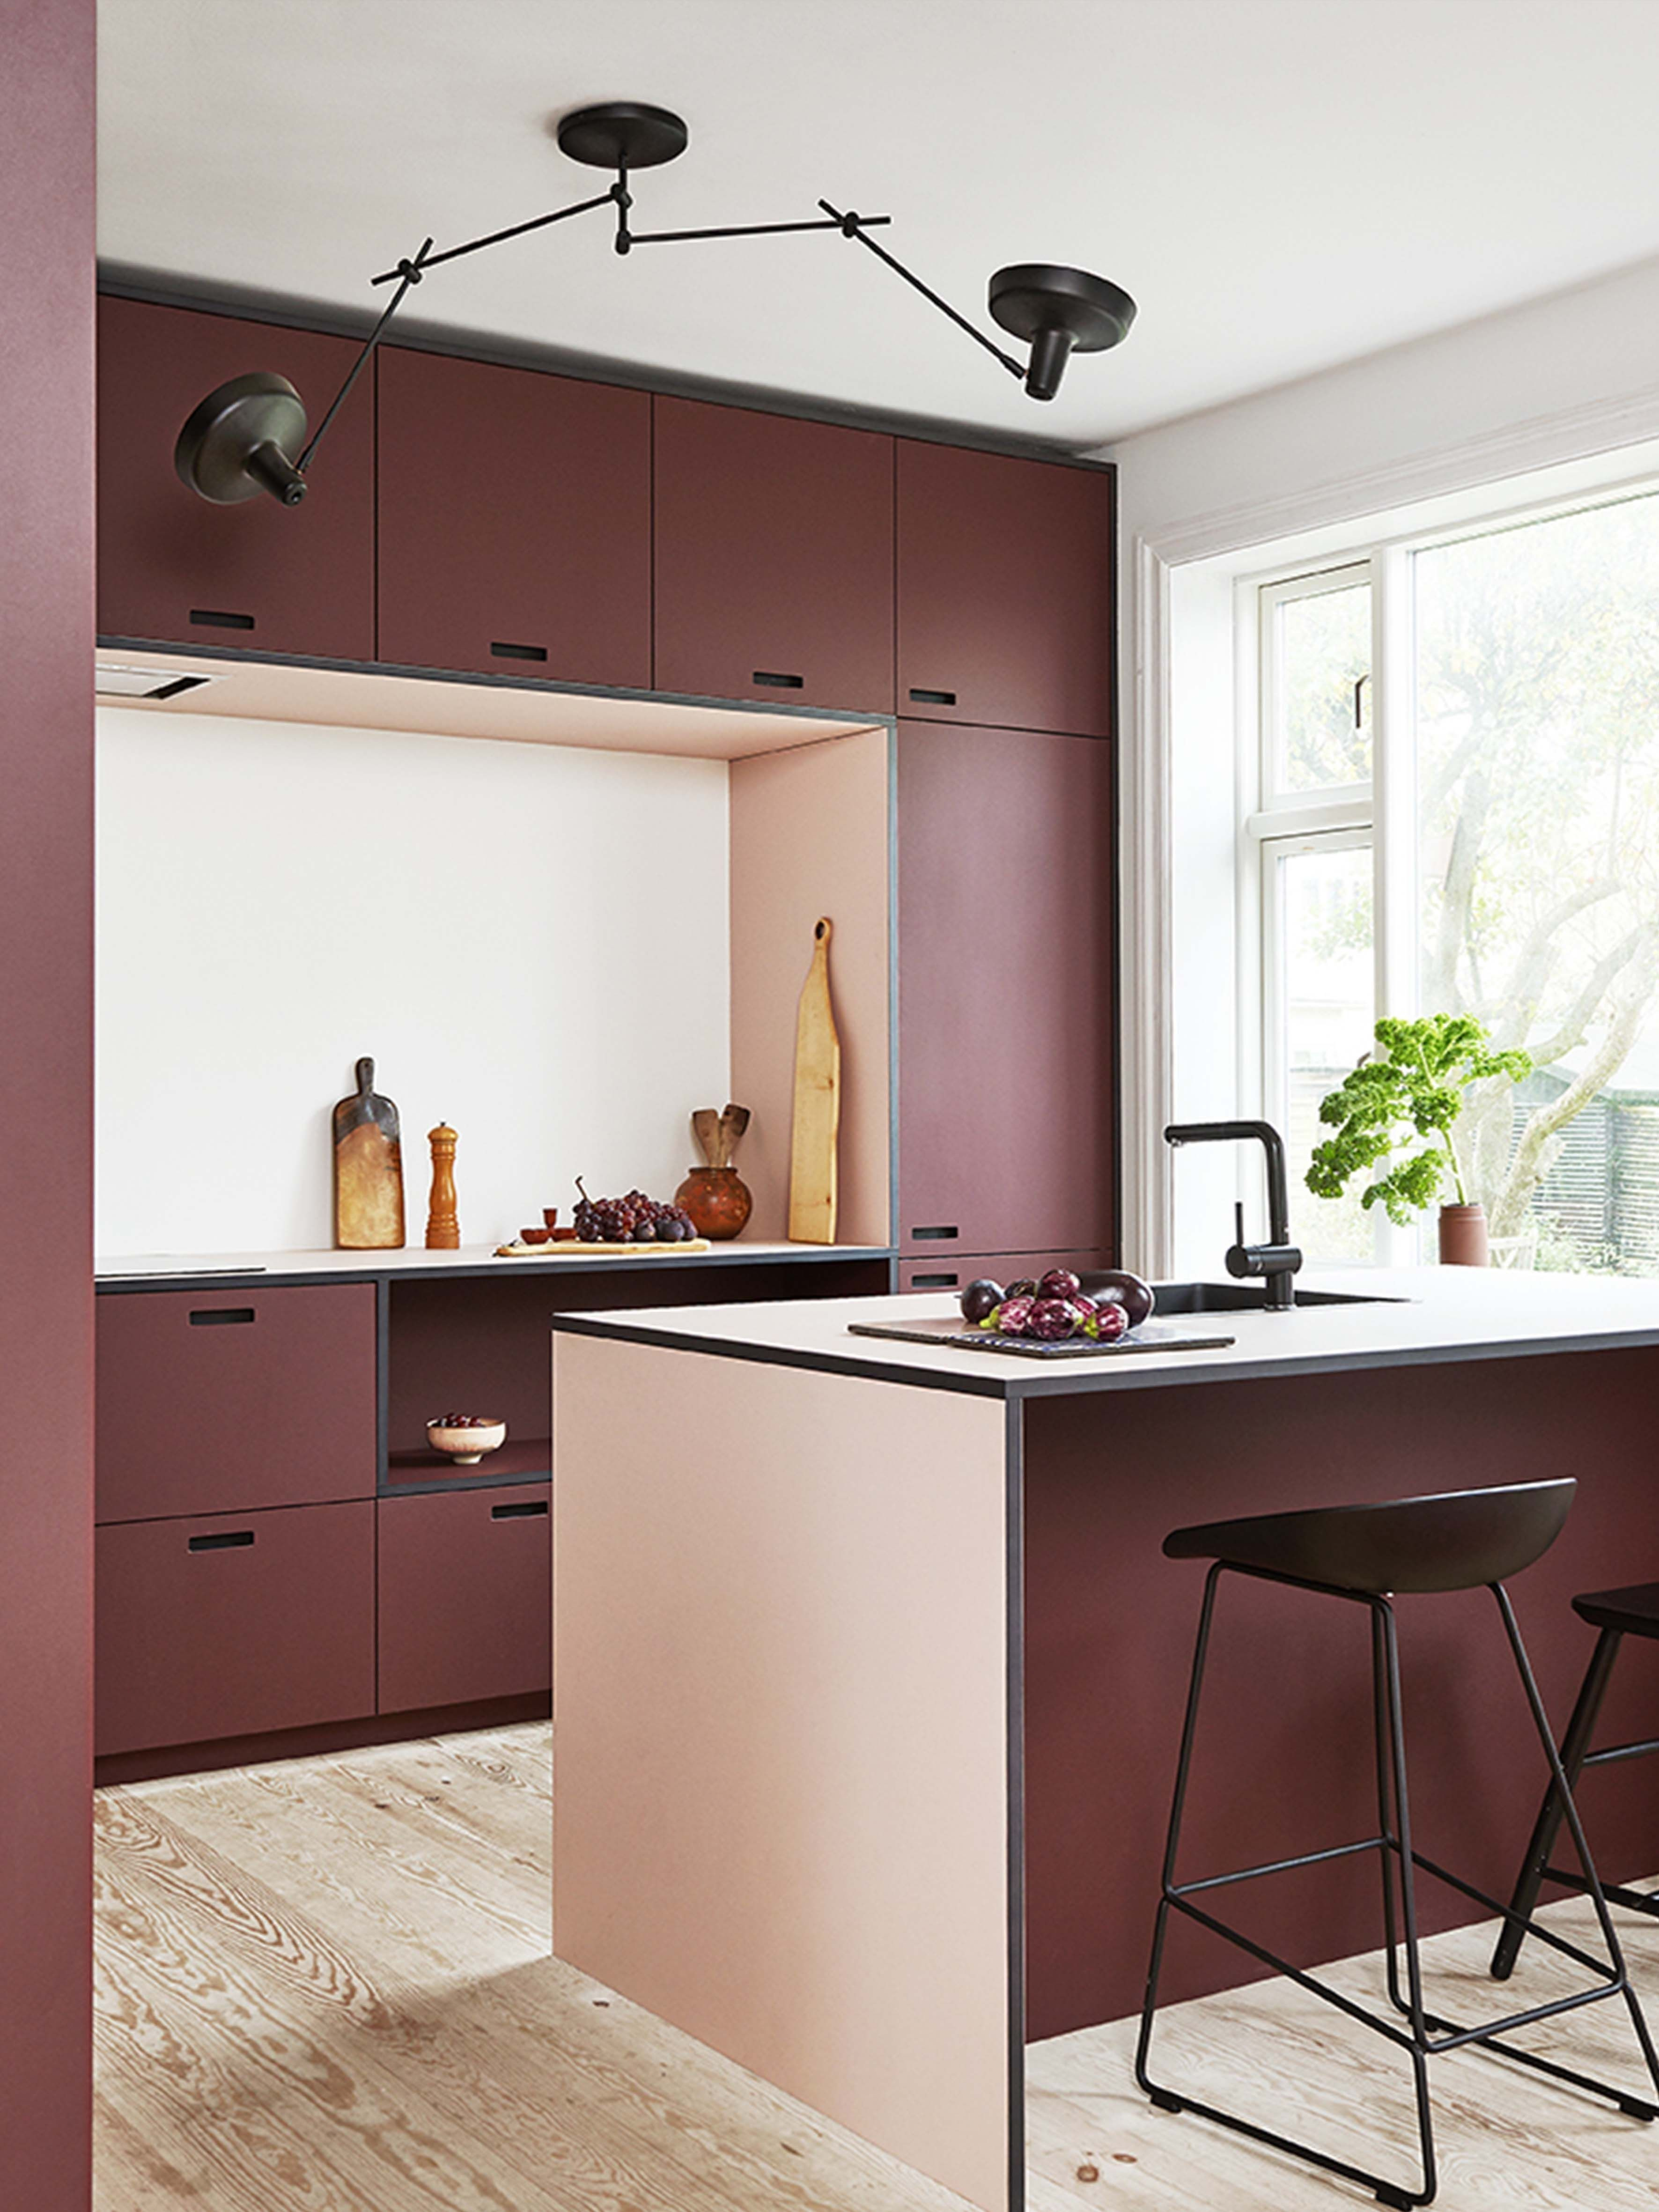 44 Magnificient Ikea Kitchen Design Ideas For Home To Try